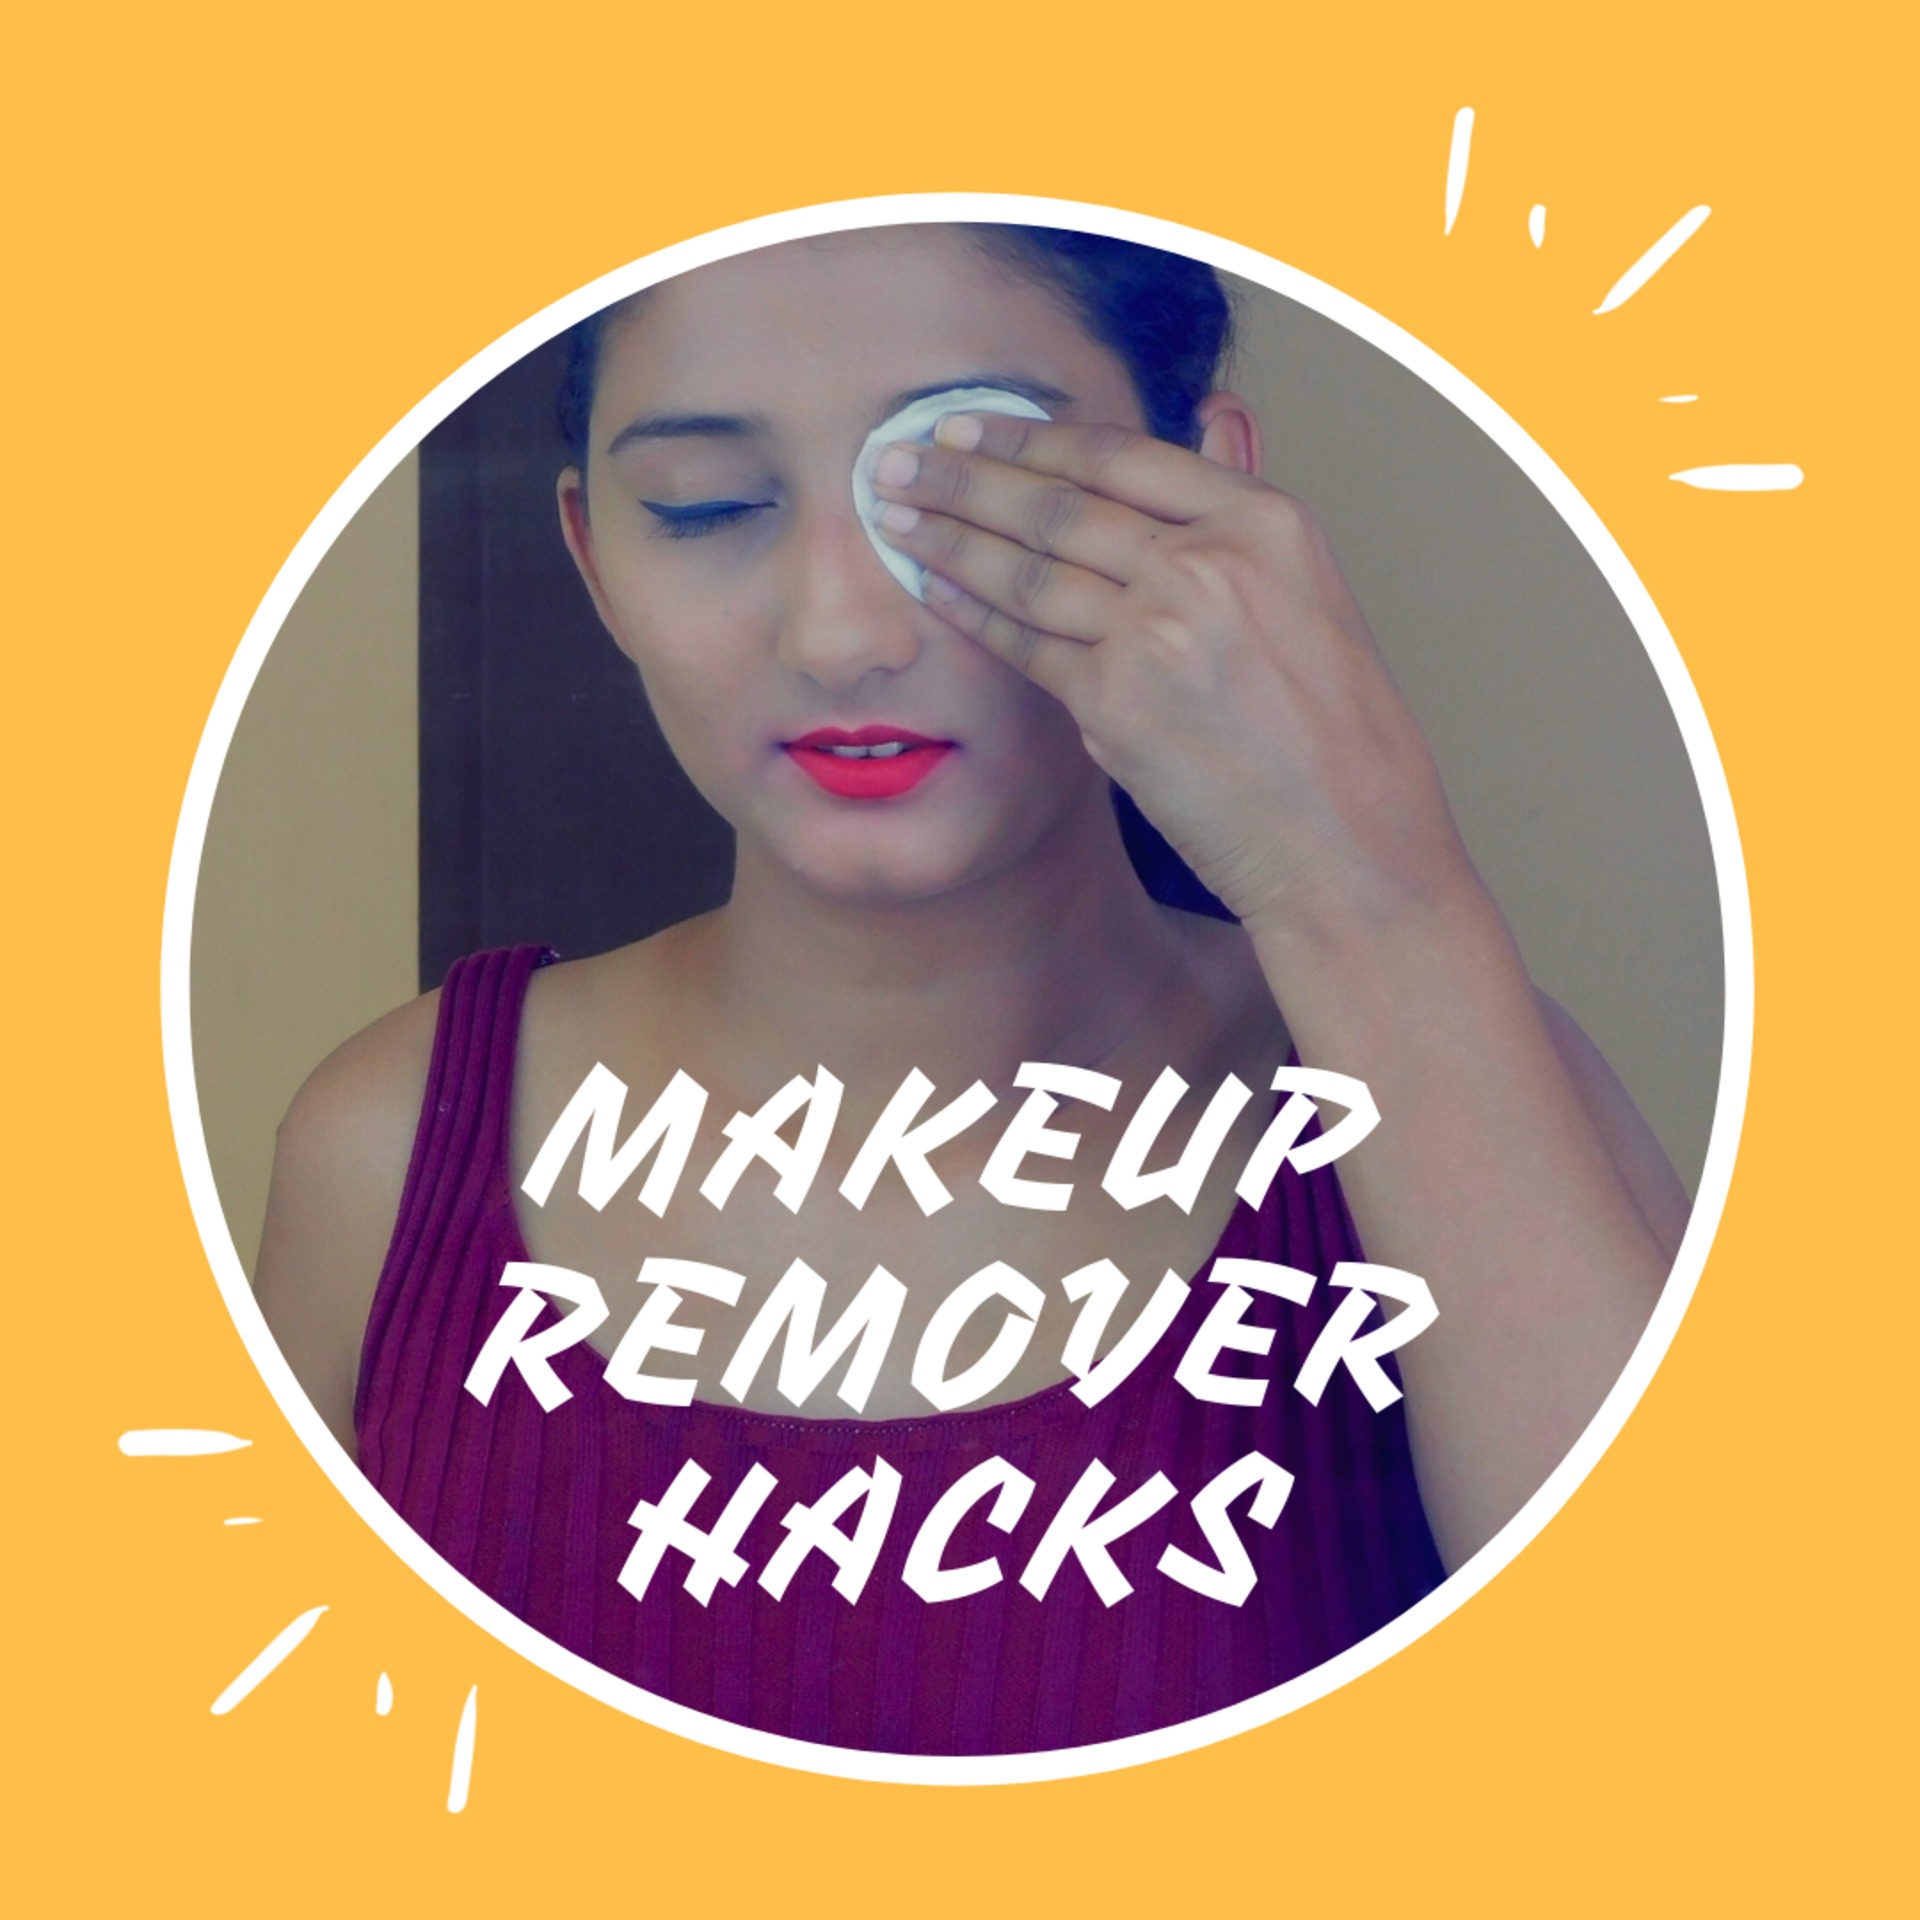 5 Makeup Removing Hacks every girl must know image